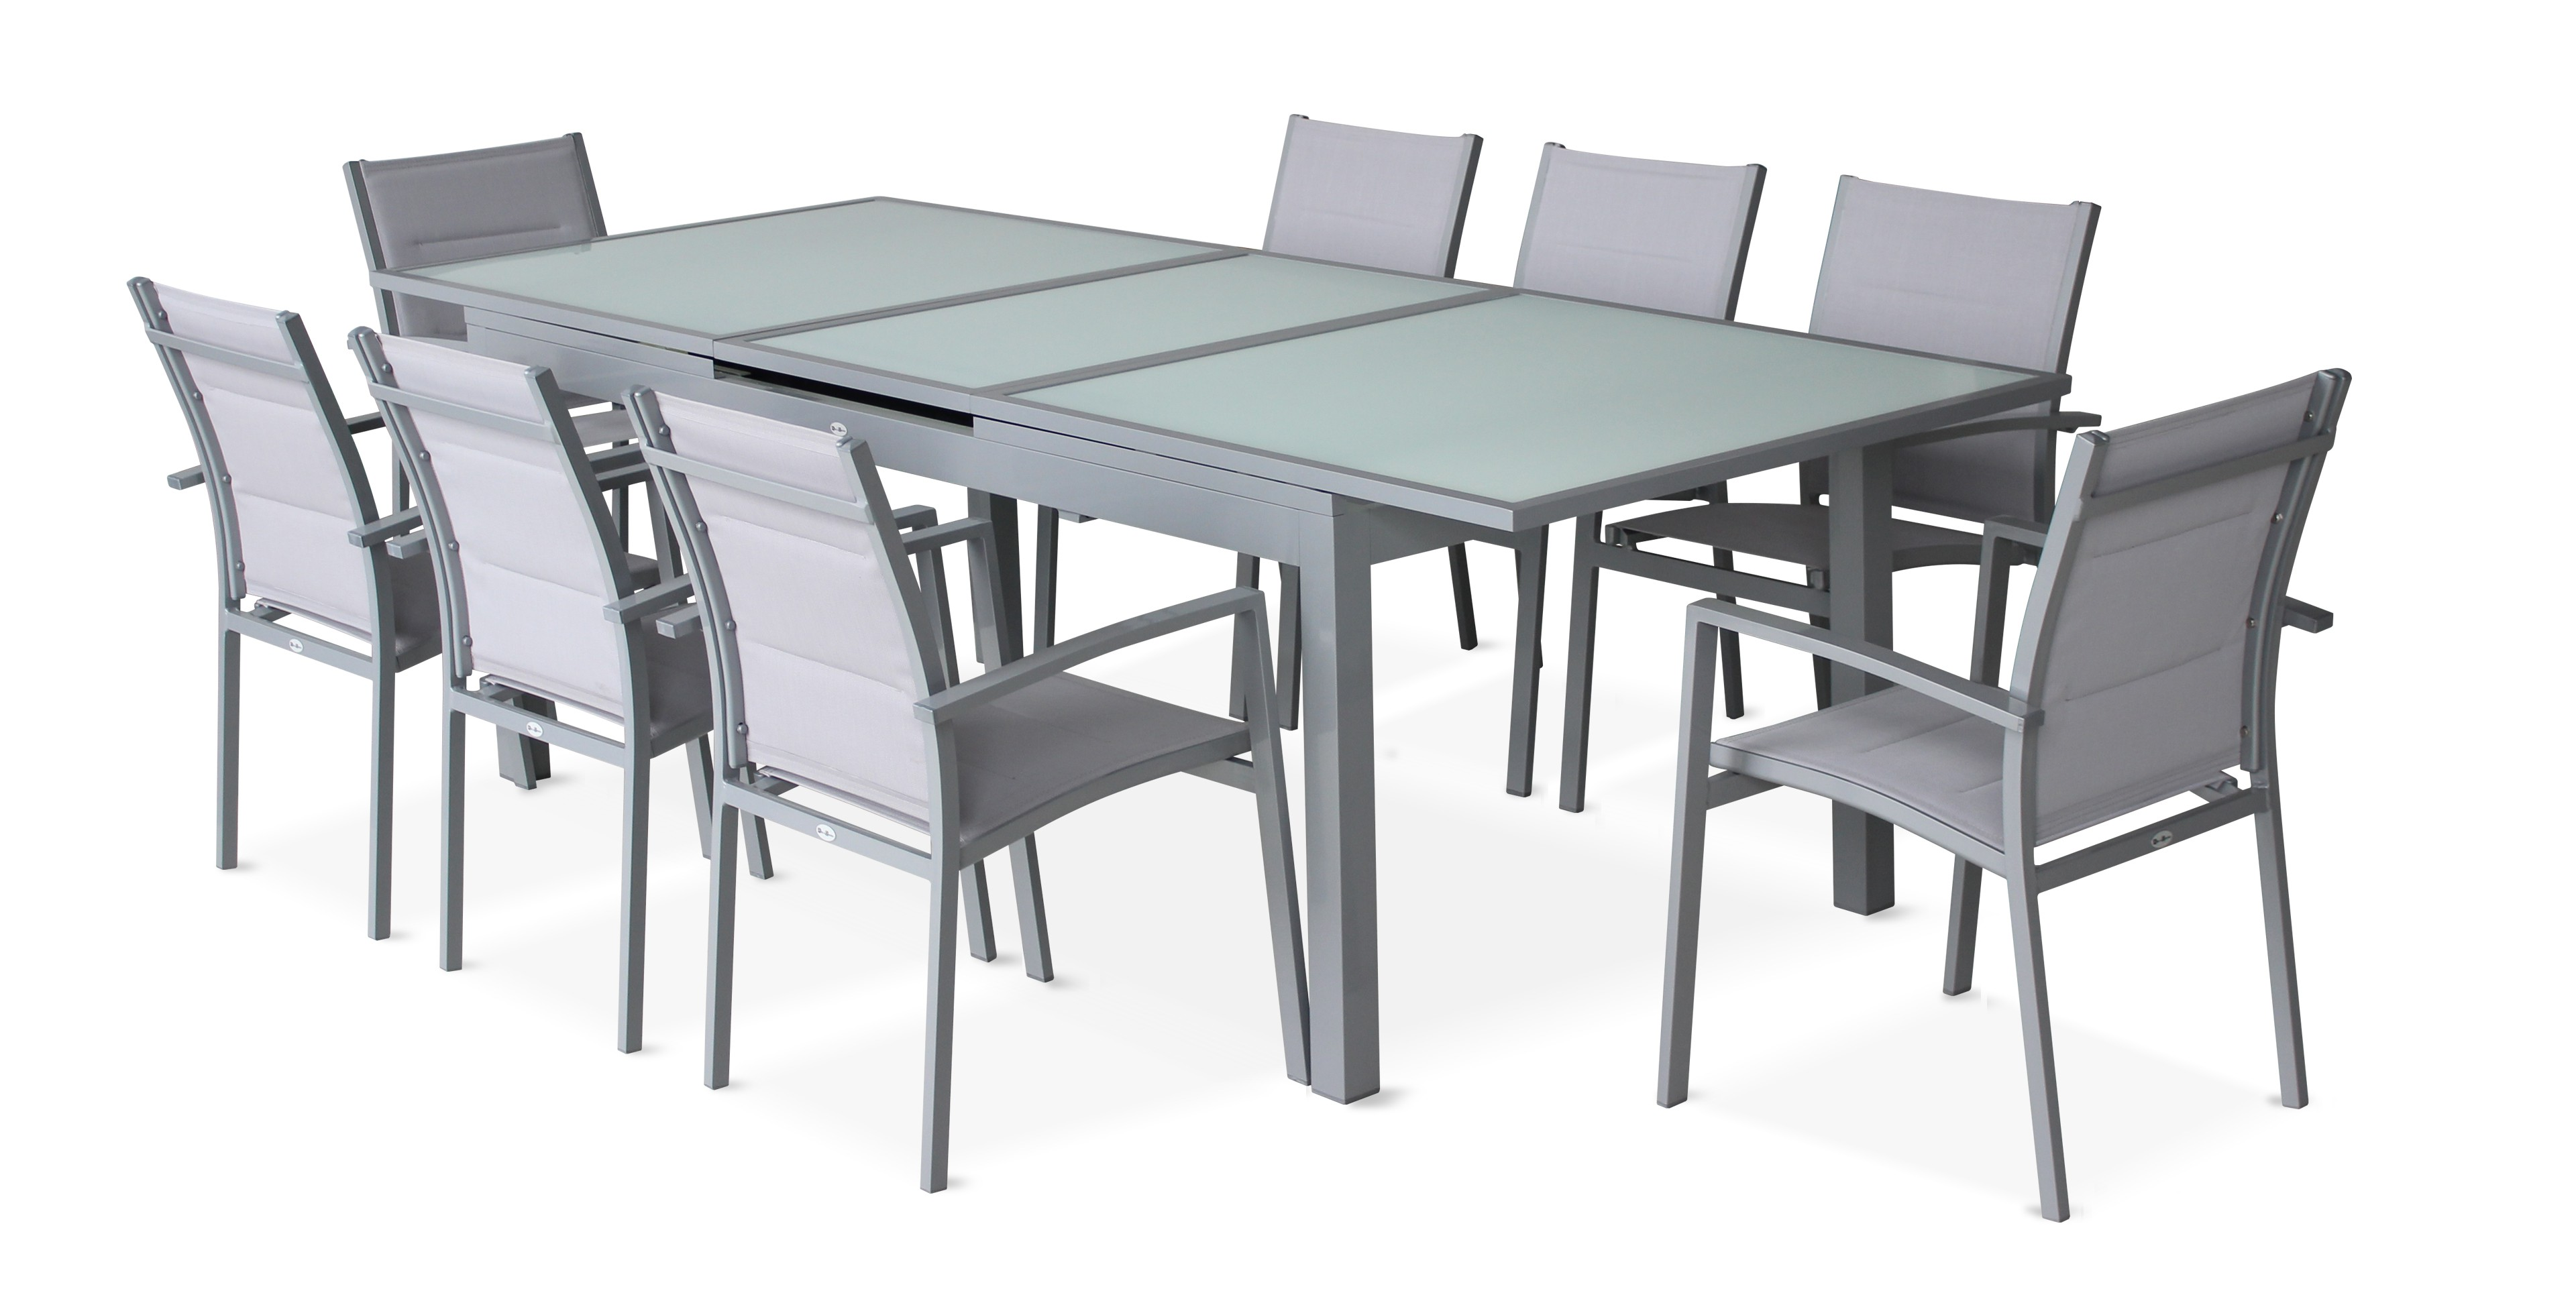 Tonnelle Niagara Leroy Merlin Table Niagara Leroy Merlin Leroy Merlin Pergola Top